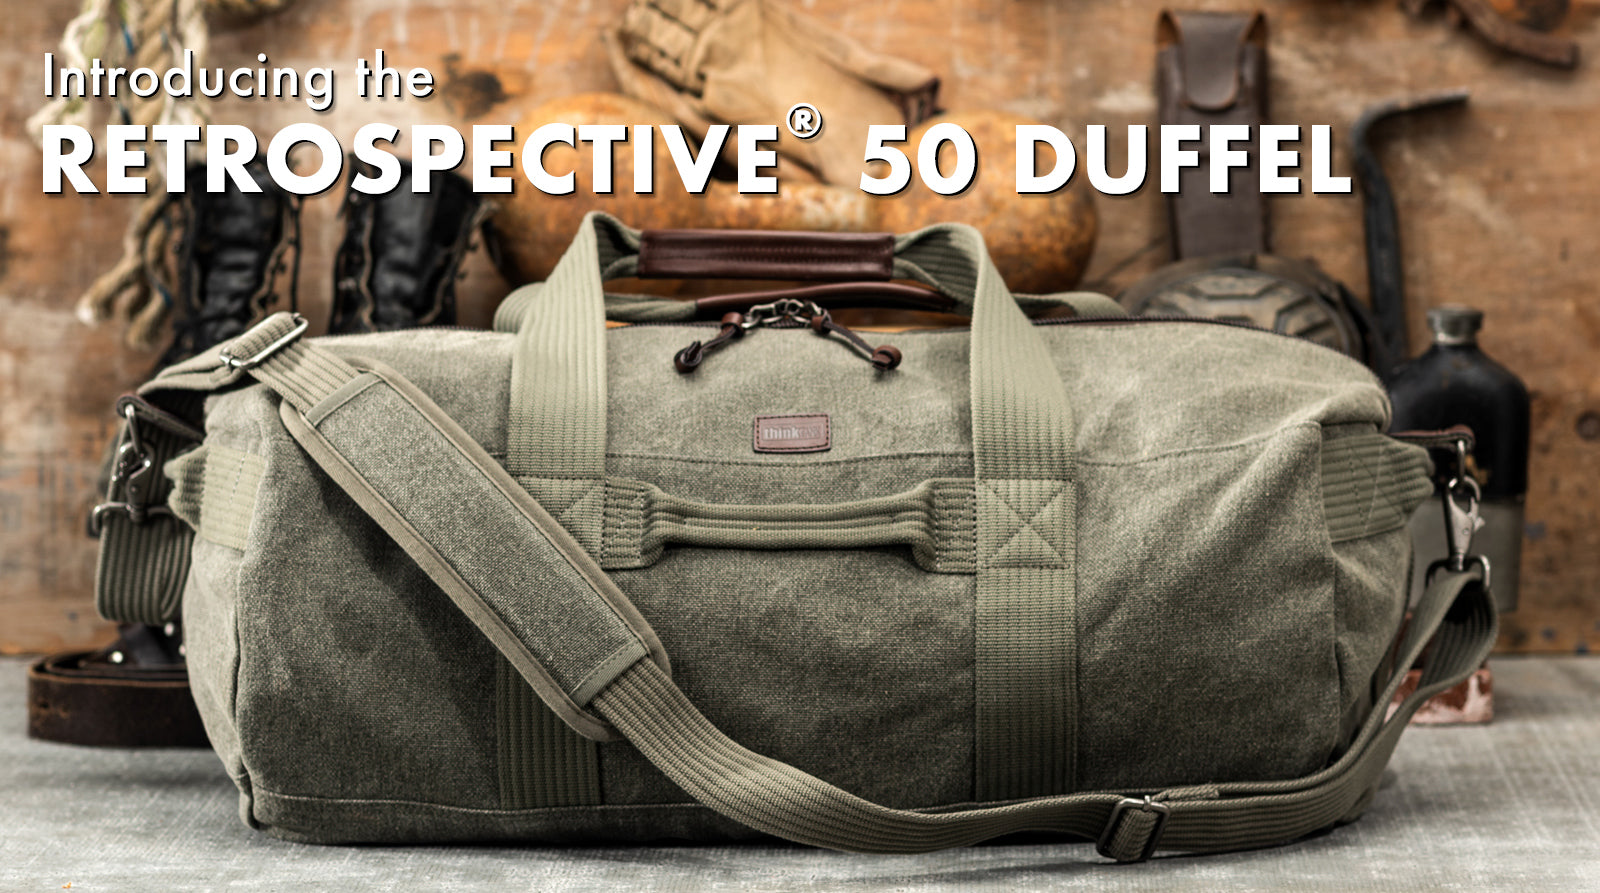 The Retrospective Duffel 50 is the perfect back road traveling companion.